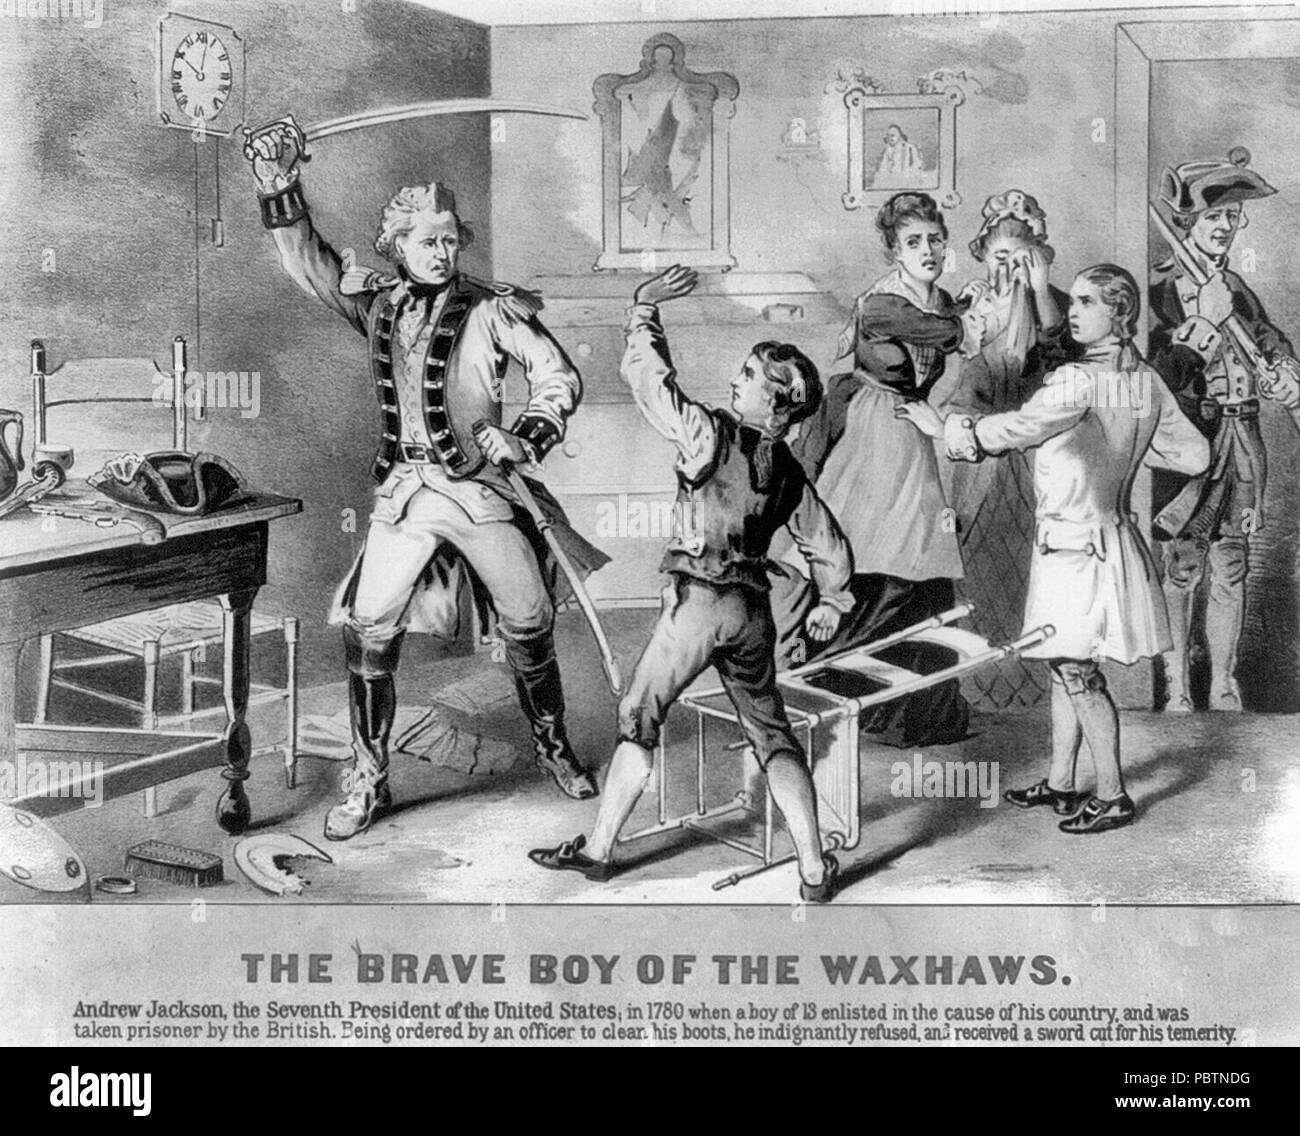 'The Brave Boy of the Waxhaws'. Depicts incident in the childhood of Andrew Jackson, showing the lad standing up to British soldier. As depicted a century later in an 1876 lithograph. - Stock Image